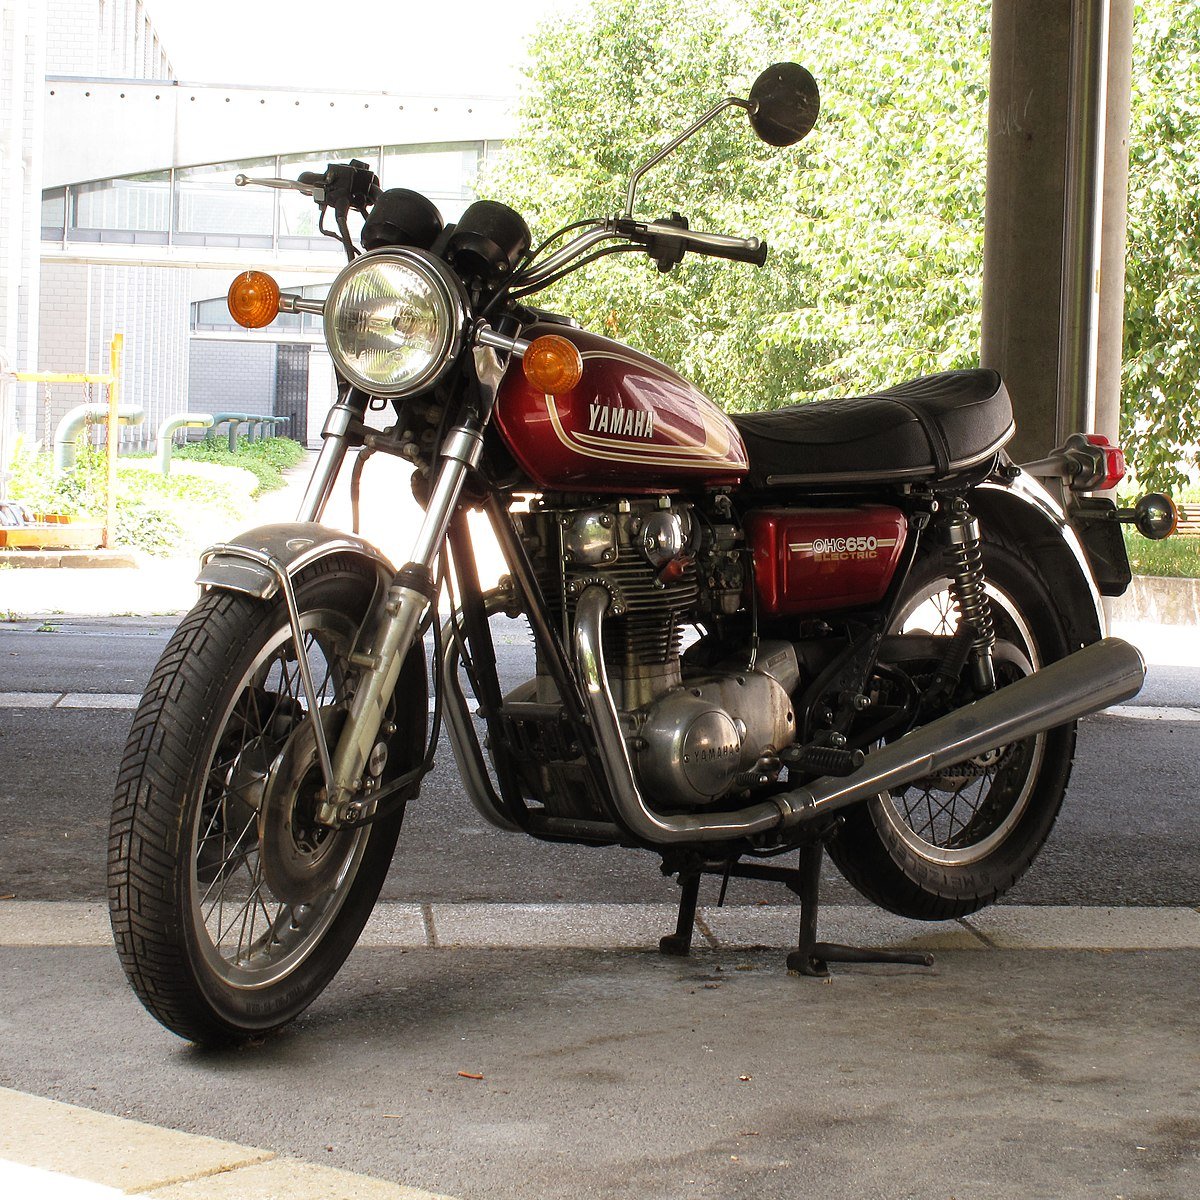 yamaha xs 650 wikipedia On c s motors